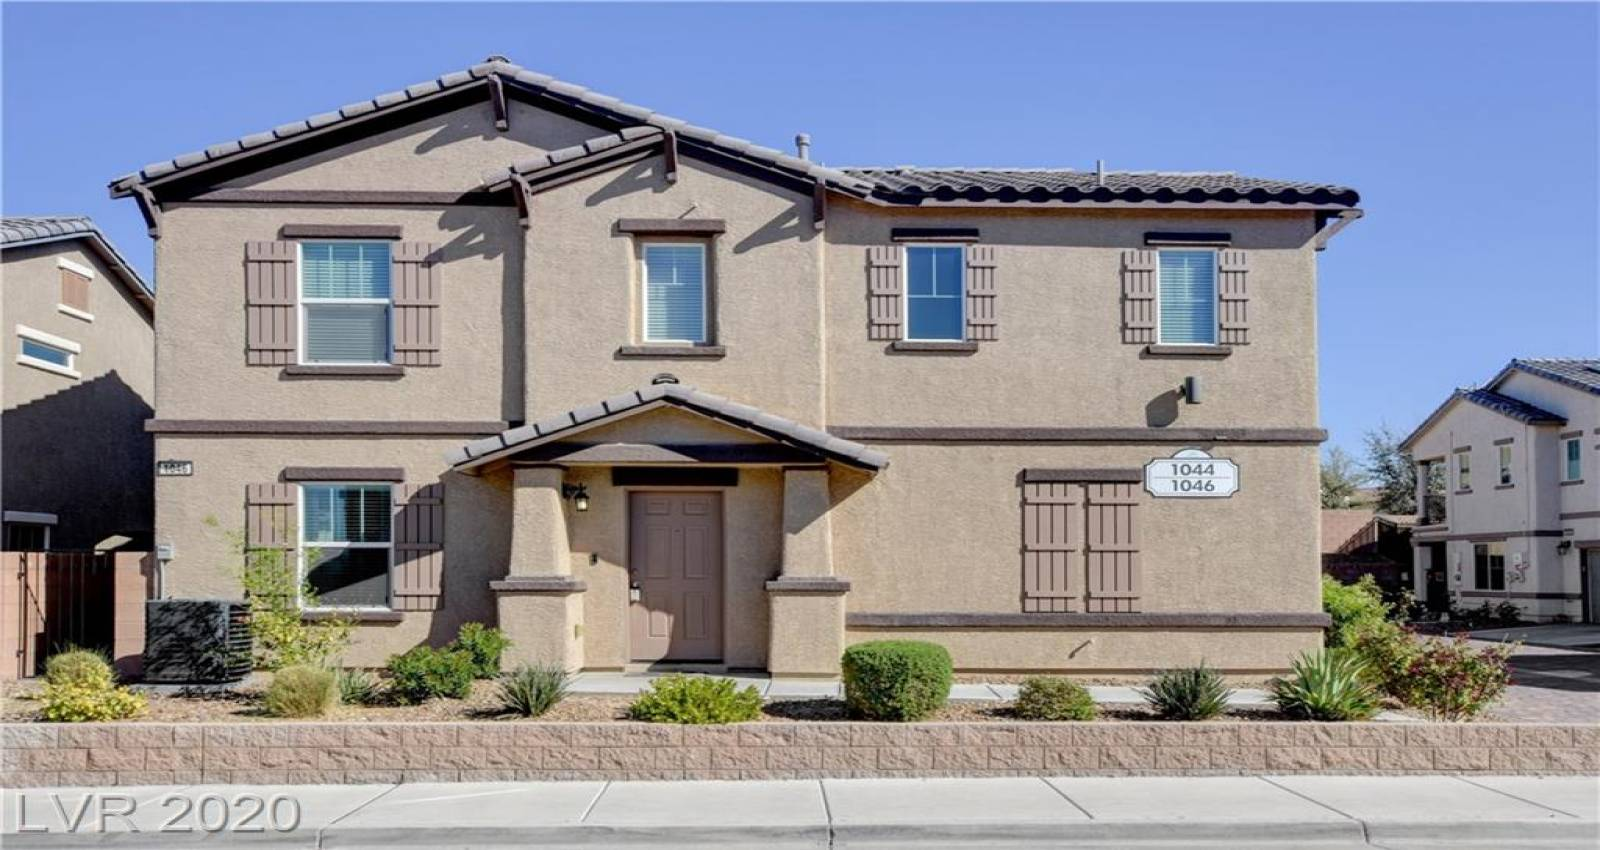 1046 Spotted Saddle, Henderson, Nevada 89015, 3 Bedrooms Bedrooms, 7 Rooms Rooms,1 BathroomBathrooms,Residential,For Sale,Spotted Saddle,2186193